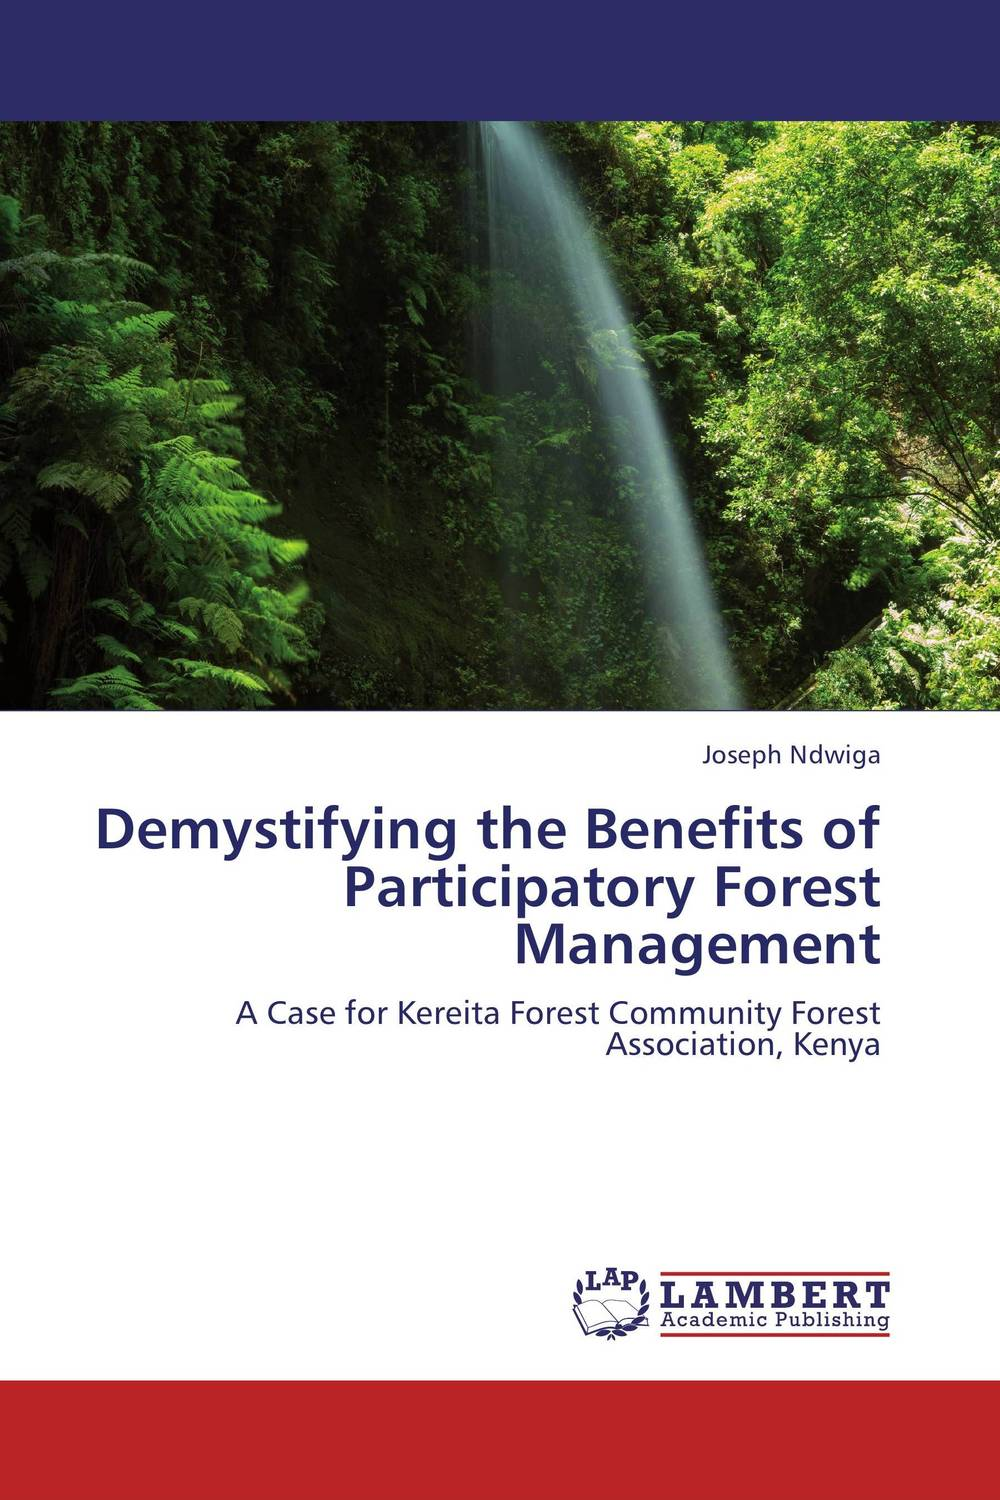 Demystifying the Benefits of Participatory Forest Management conflicts in forest resources usage and management